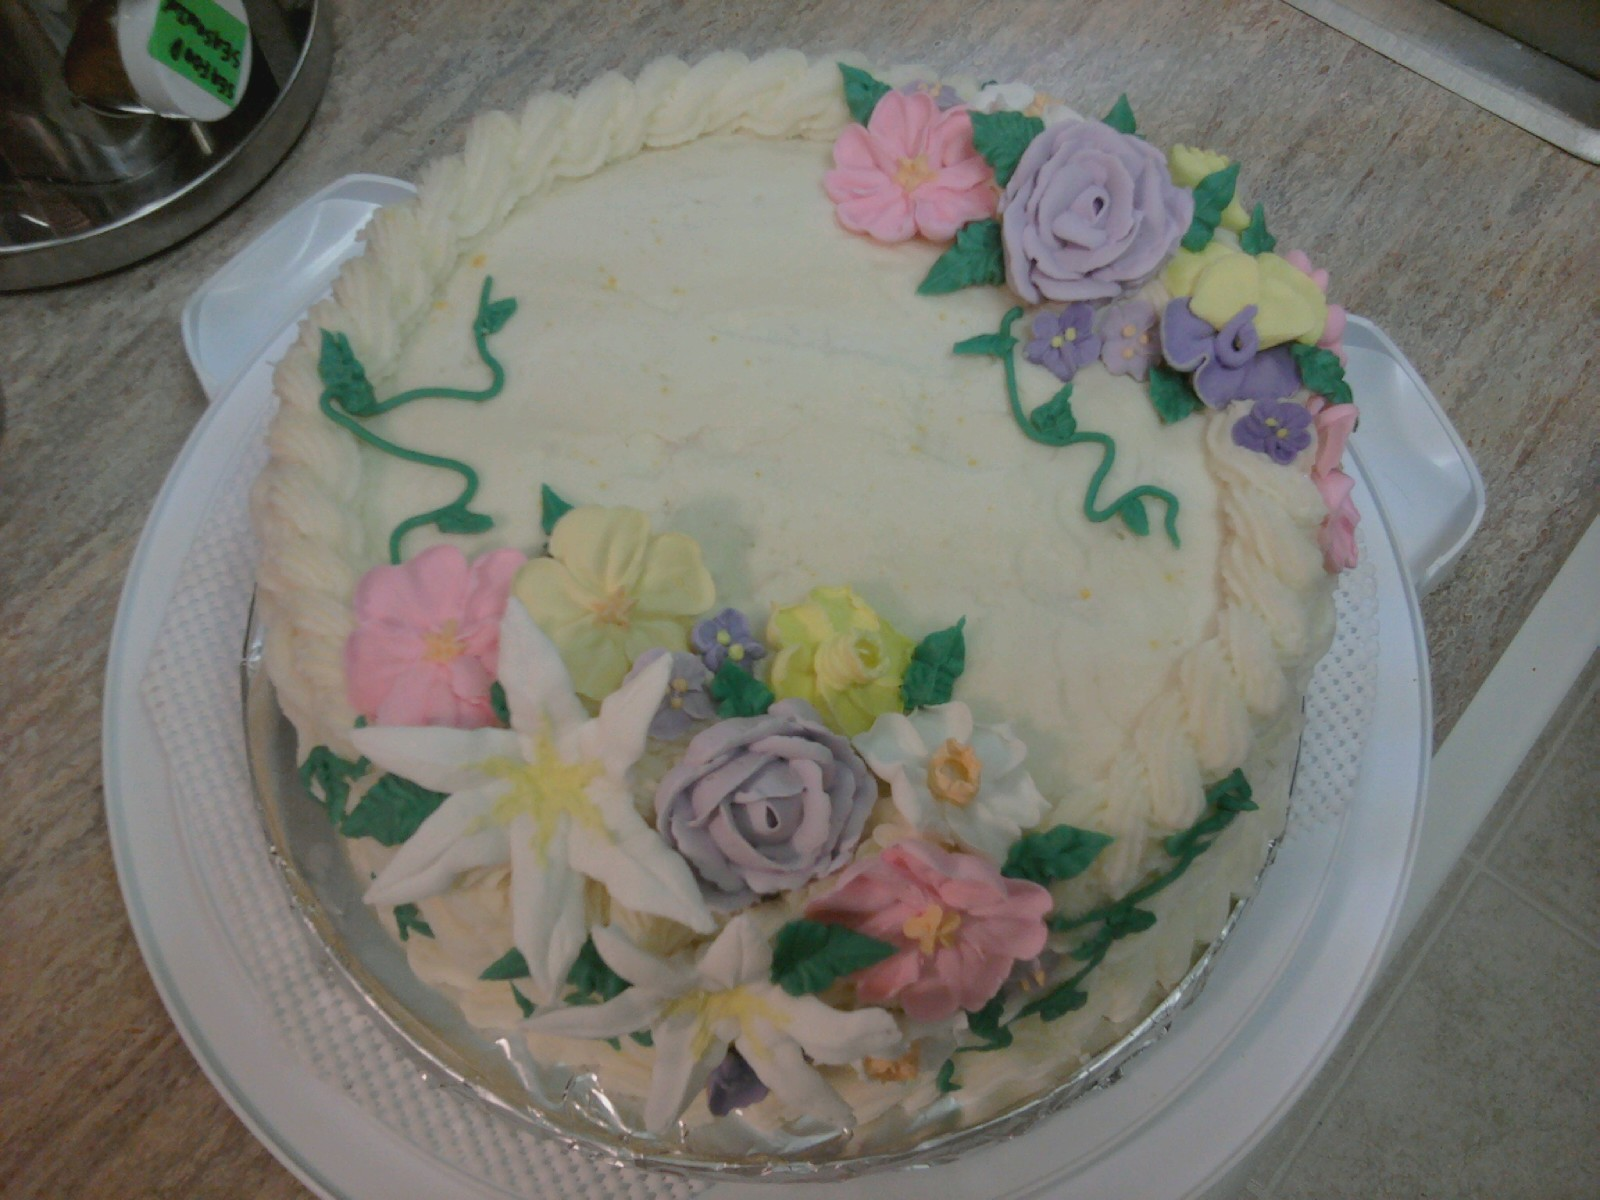 Wilton Cake Decorating Making Flowers : The Gluten Free Wife: Wilton Advanced Flowers Final Cake!!!